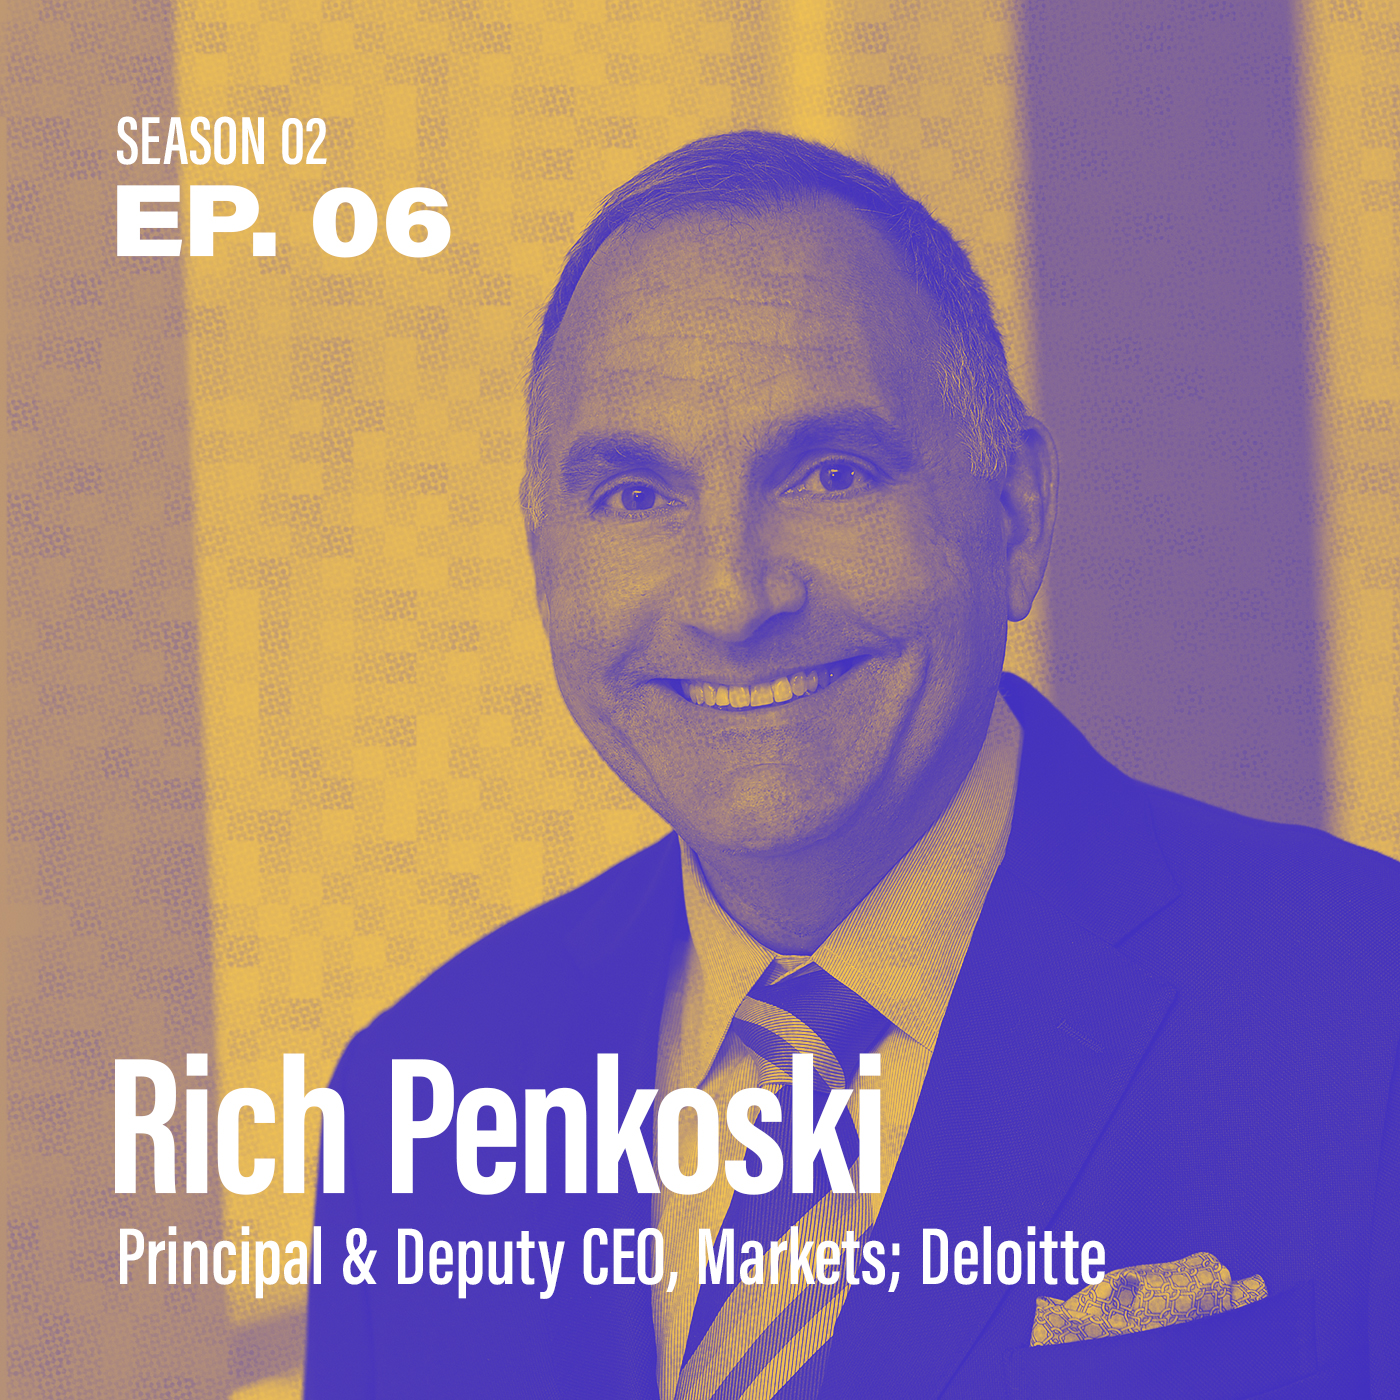 """Season 2, Episode 6 - """"What is my role in the organization?"""" featuring Rich Penkoski, Principal and Deputy CEO, Markets at Deloitte"""